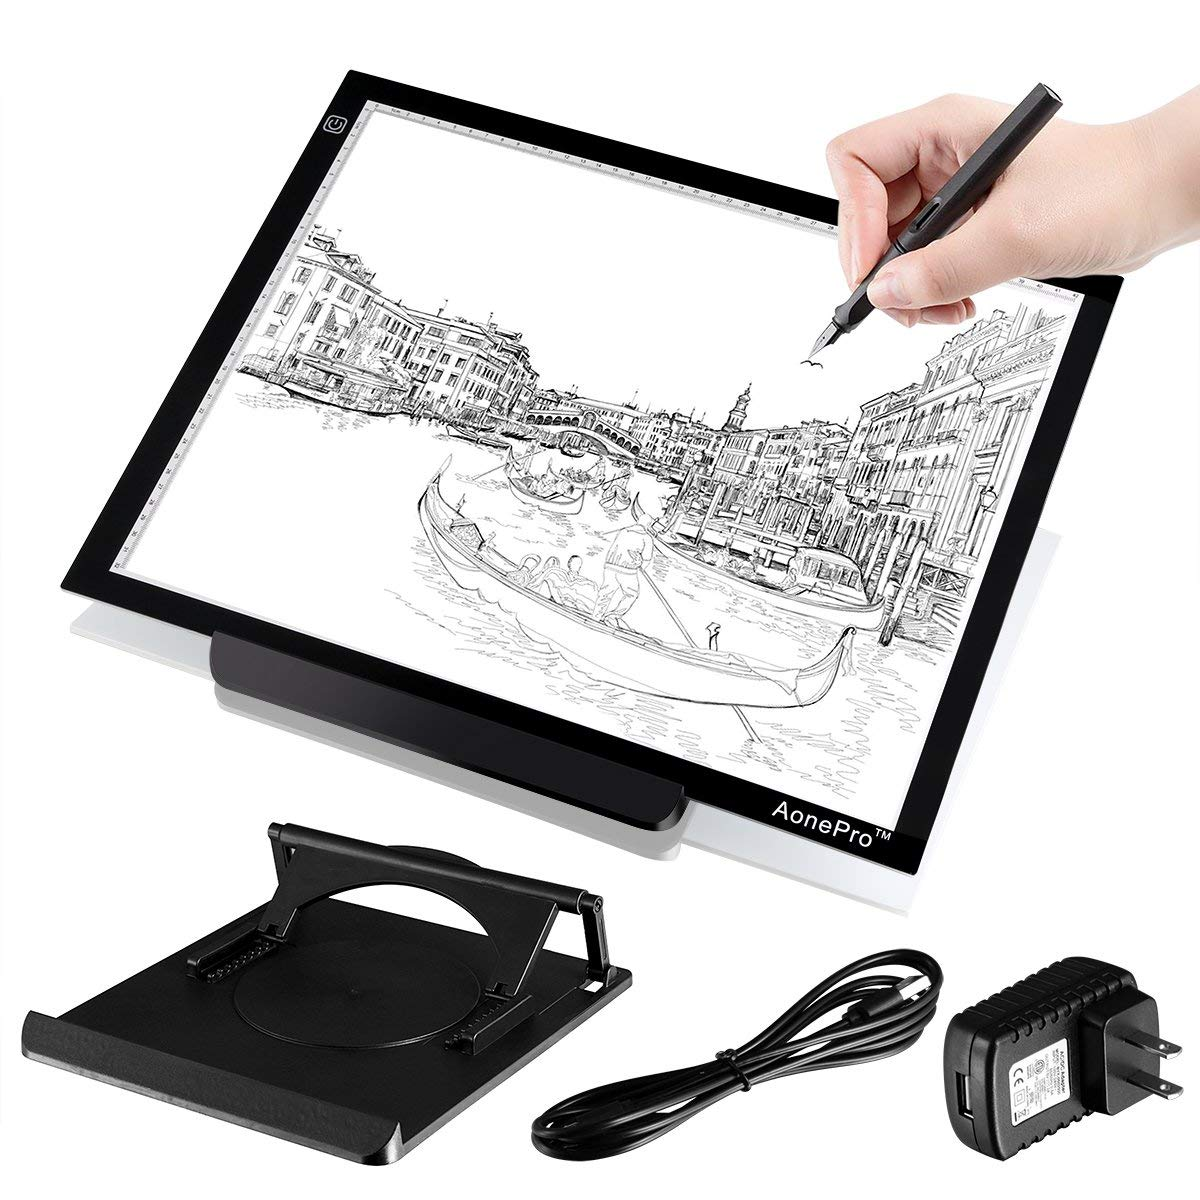 A3 LED Tracing Light Box USB Powered Ultra-Thin 19 inch Drawing Light Pad for Tattoo Drawing, Stencil, Sketching by Aonepro